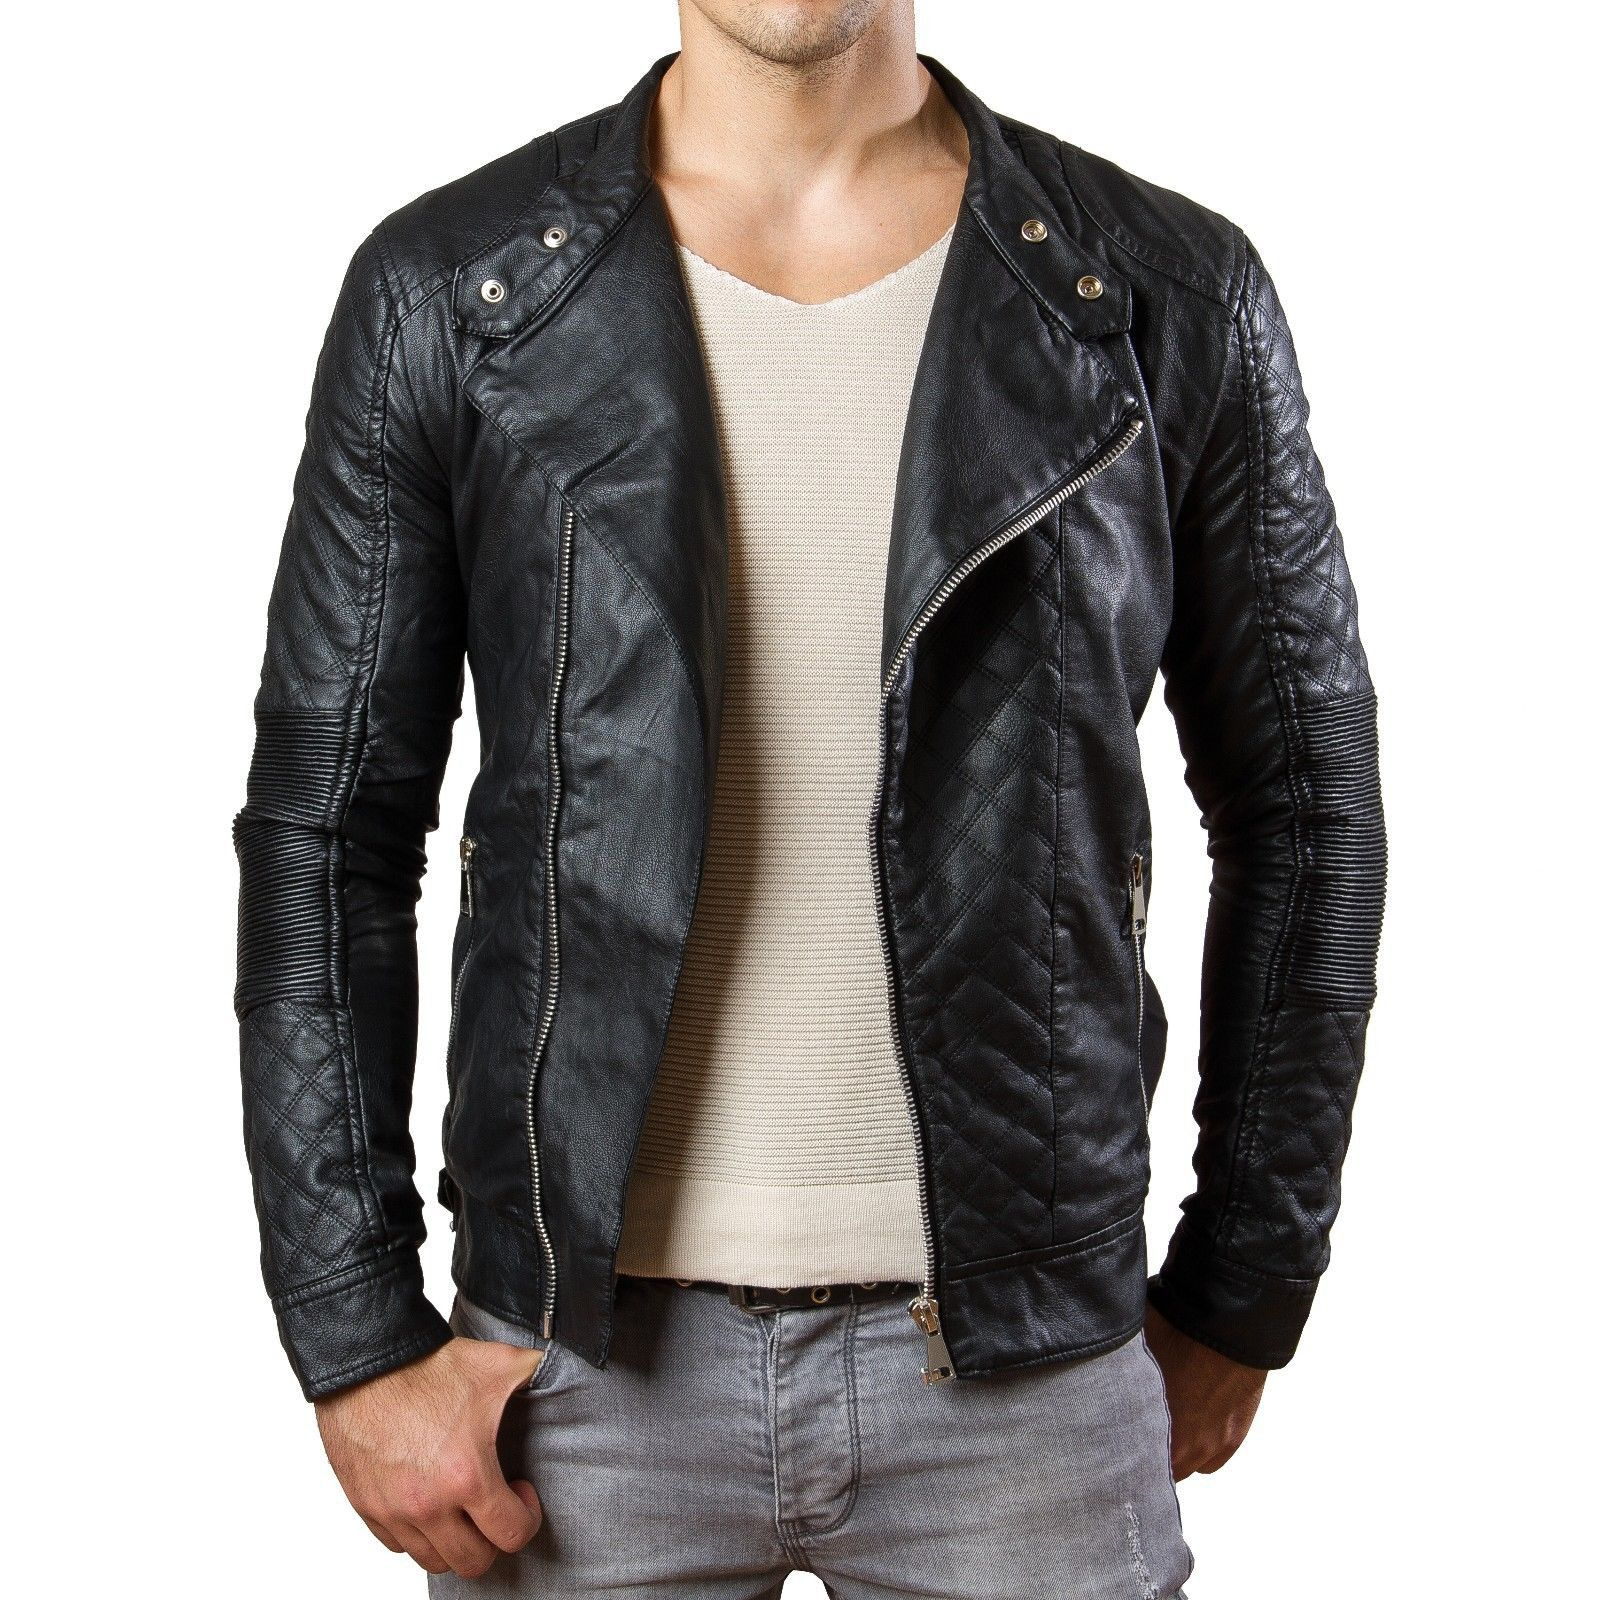 prestige homme mr04 herren biker jacke stepp pu kunstleder schwarz club party pinterest. Black Bedroom Furniture Sets. Home Design Ideas